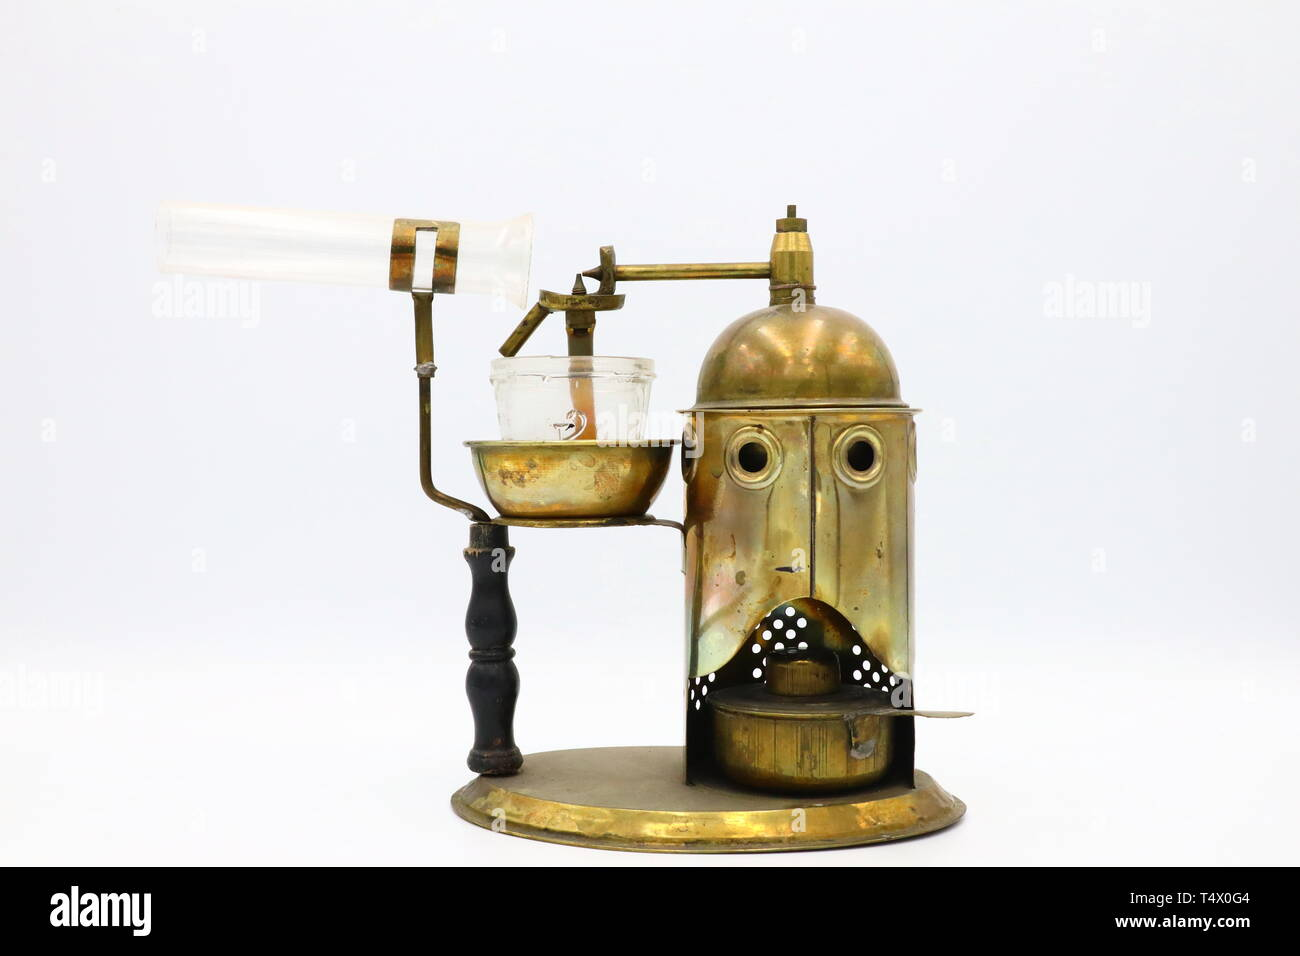 Antique Aerosol Atomizer - Stock Image